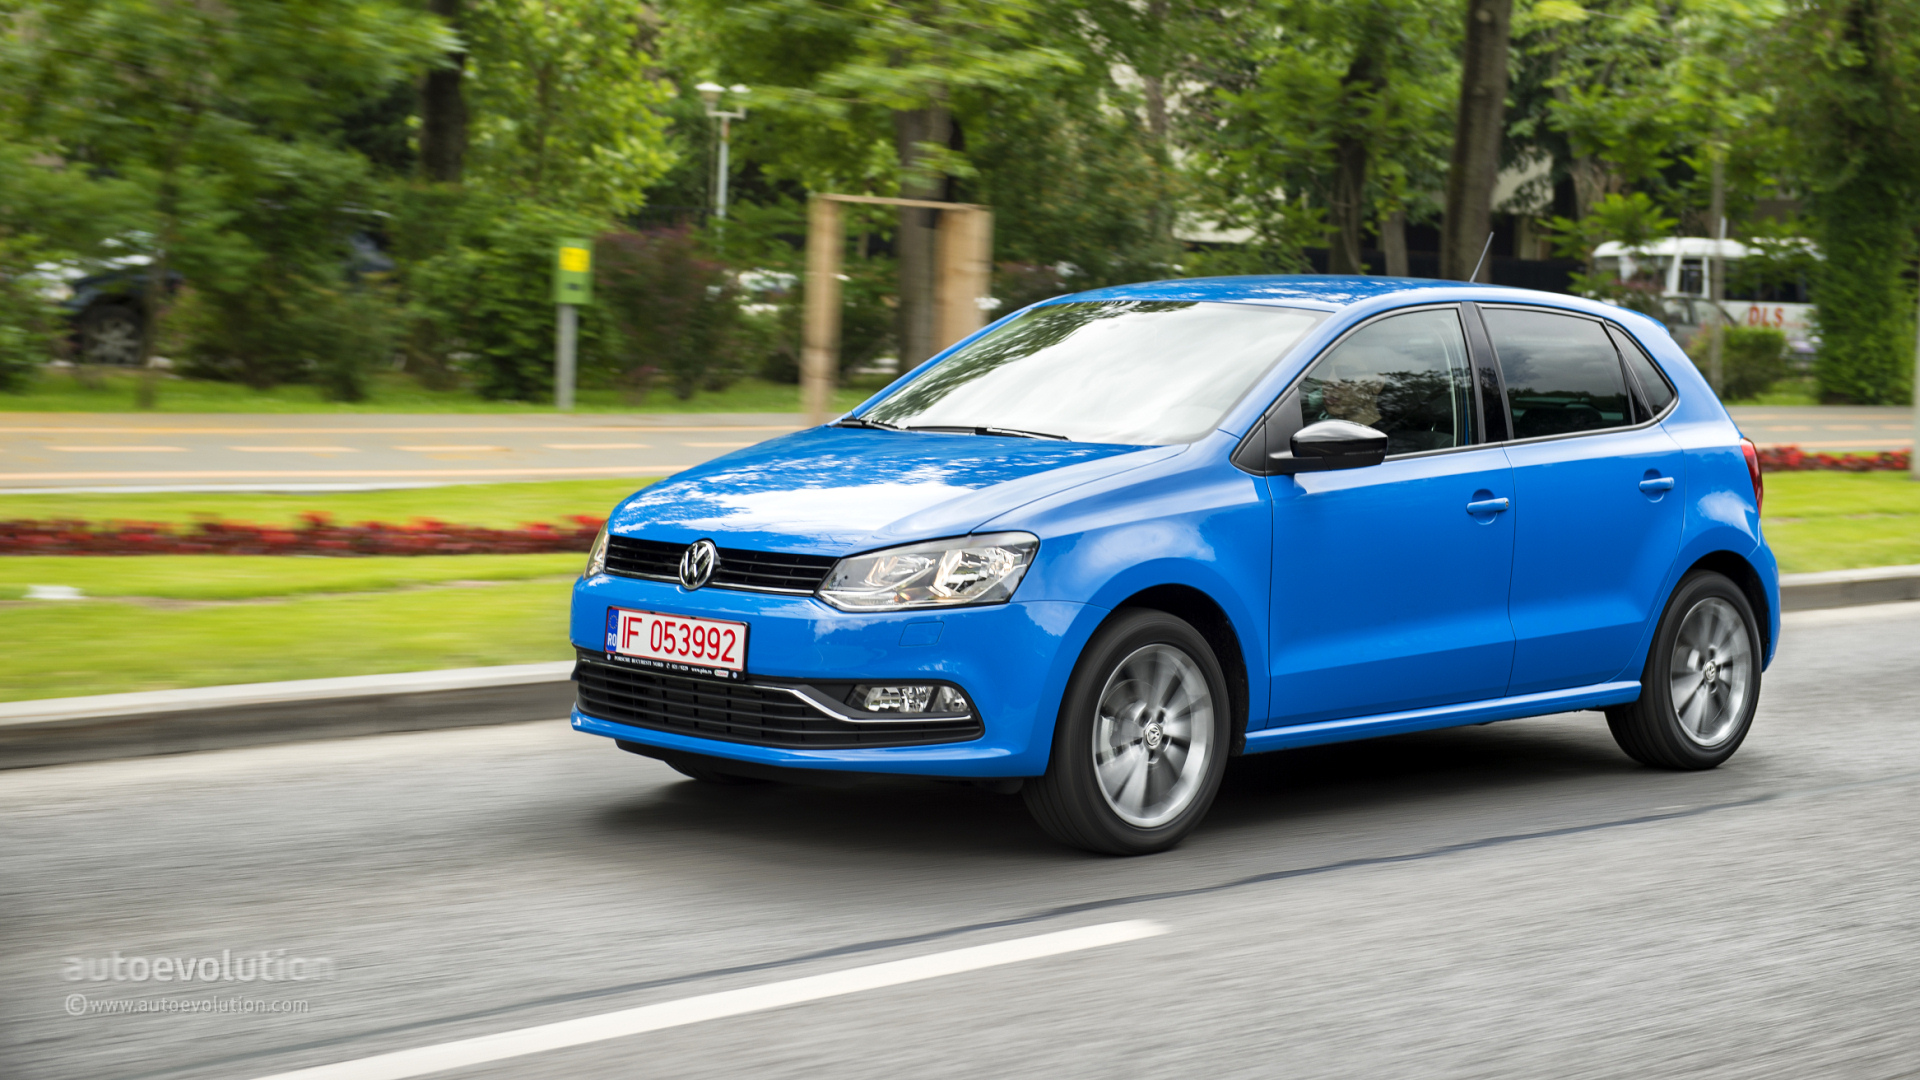 2014 Volkswagen Polo Facelift Tested Autoevolution